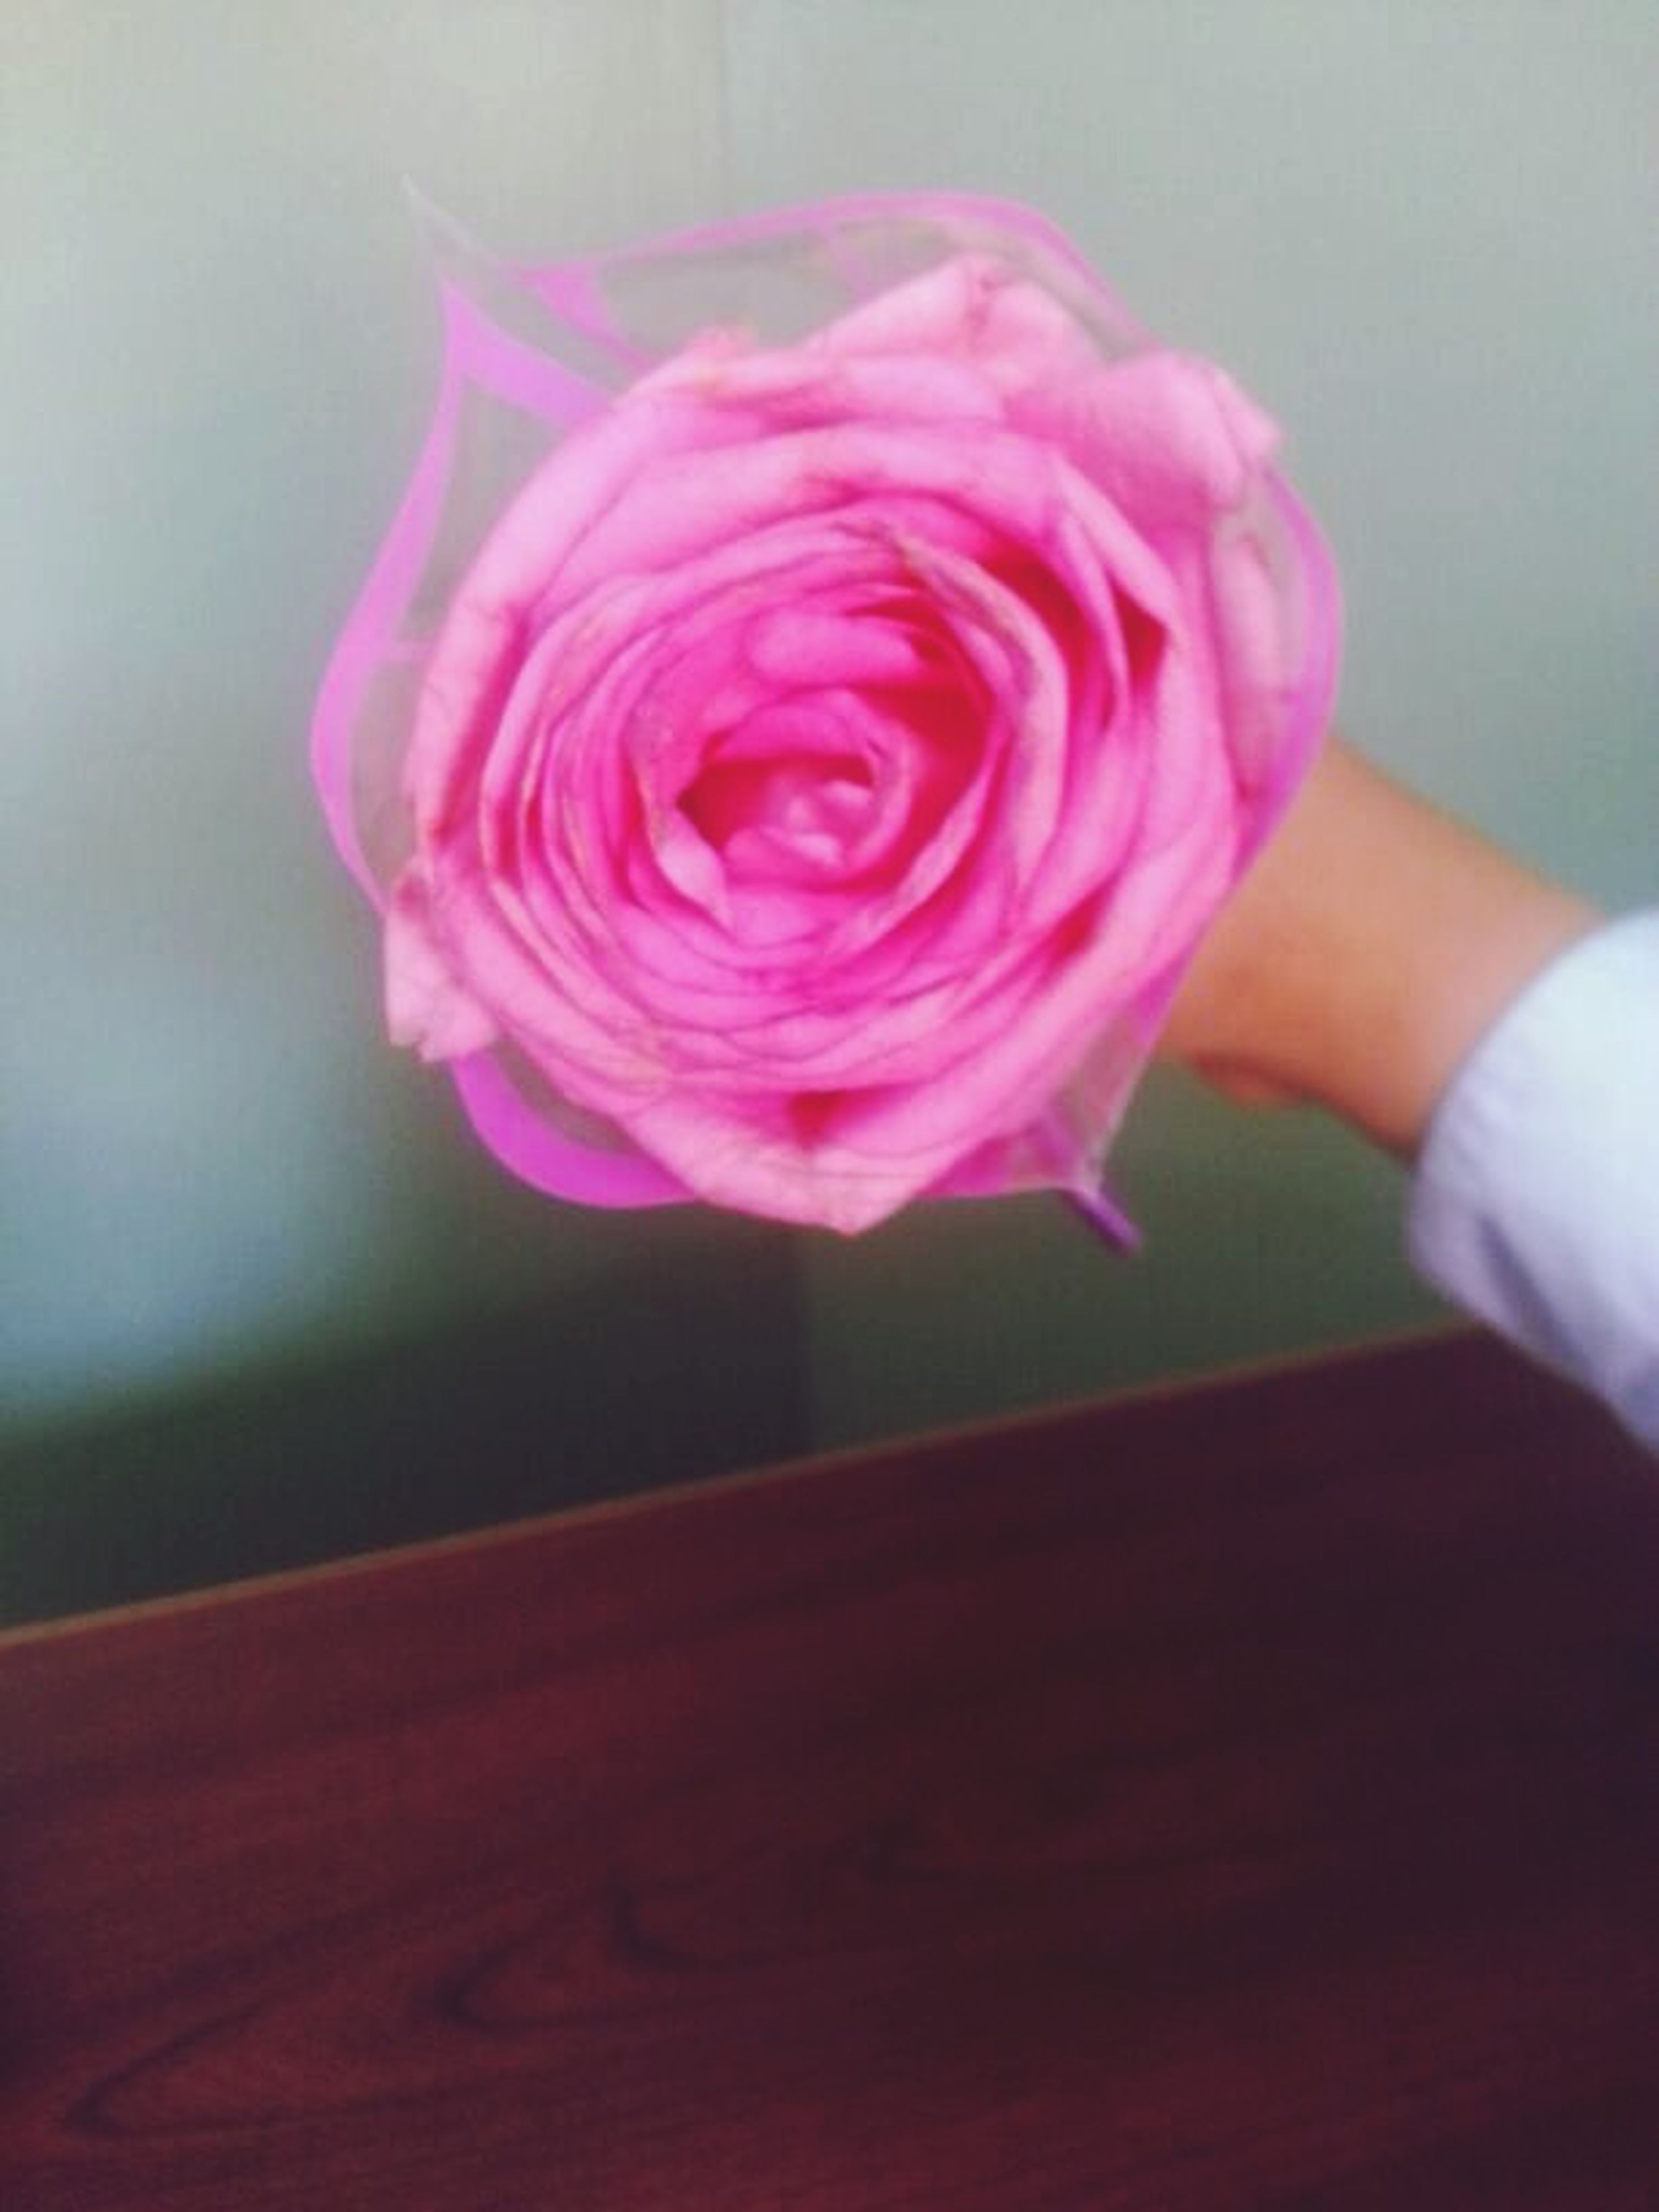 flower, pink color, indoors, petal, fragility, close-up, focus on foreground, rose - flower, flower head, person, freshness, pink, part of, holding, single flower, selective focus, purple